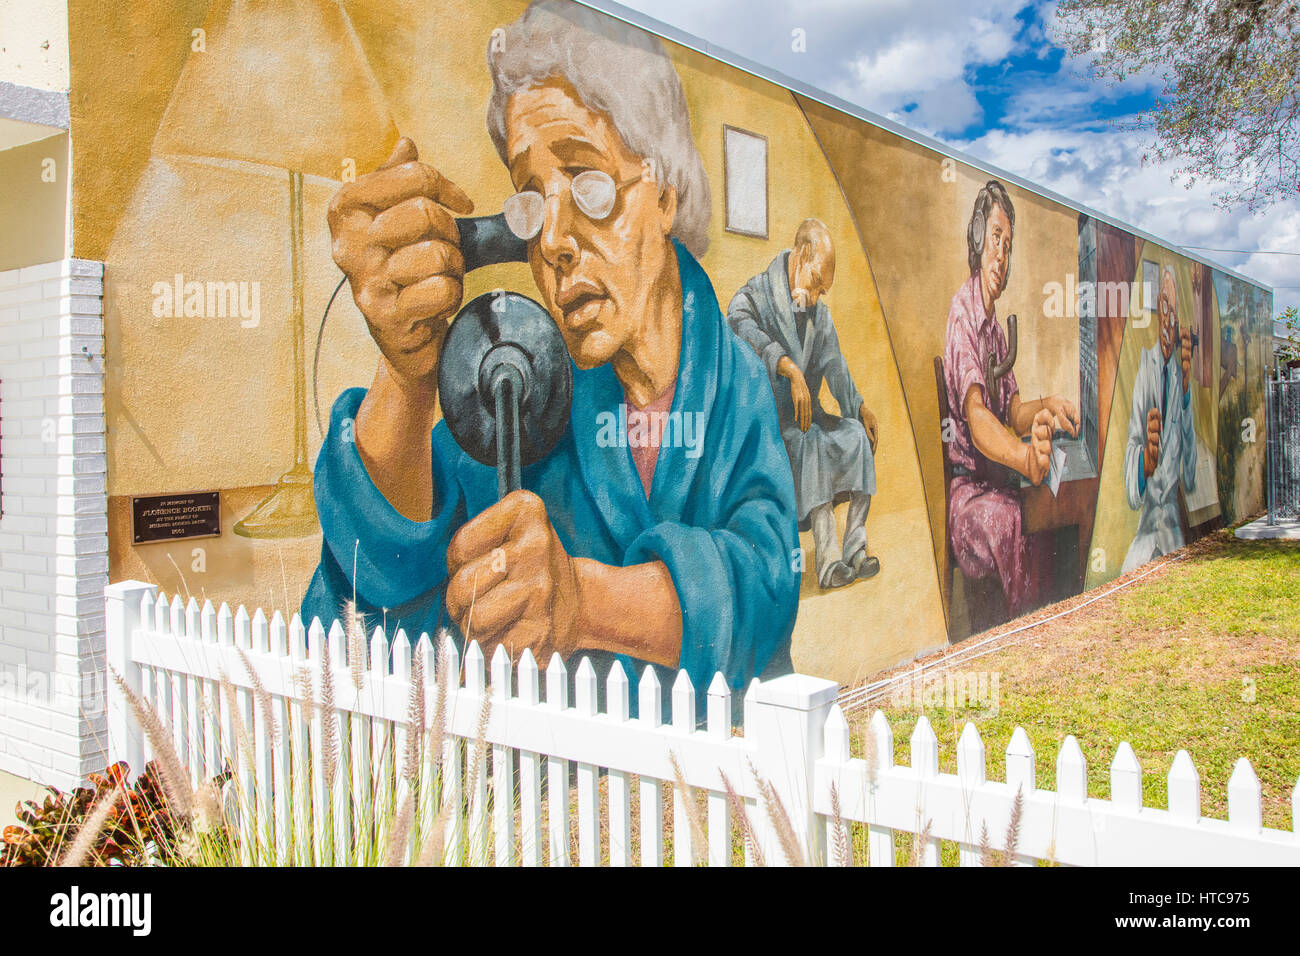 Art murals painted on outdoor building walls in Lake Placid Florida known as the Town of Murals - Stock Image